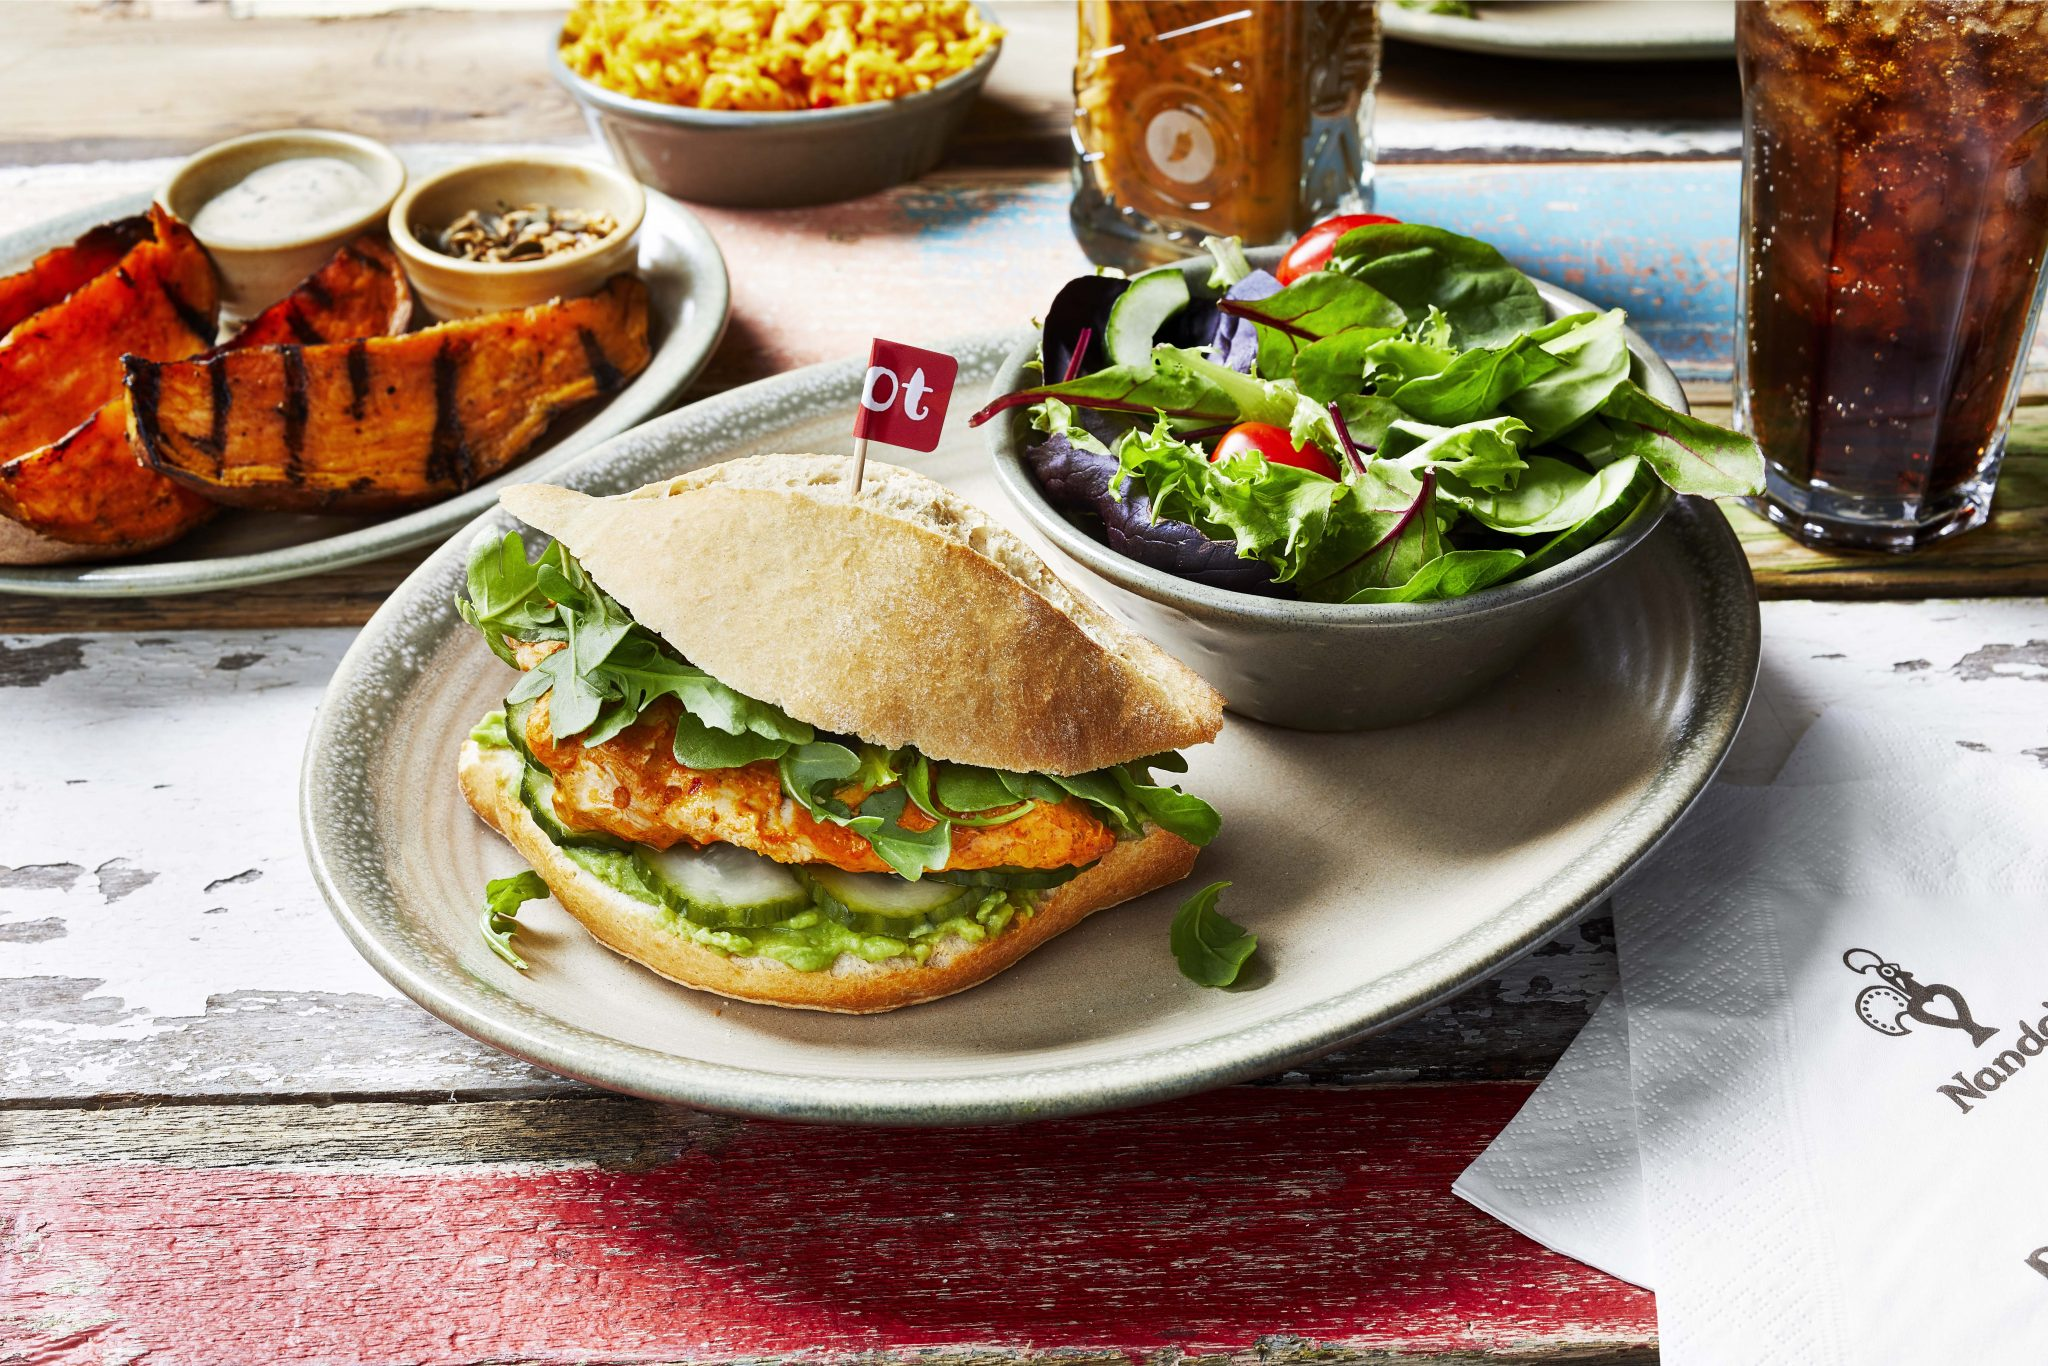 Full of vibrant green ingredients, Fresco Burger is the restaurant's latest special burger release to join the menu. Nando's Fresco Burger is available from 5th June for 12 weeks.